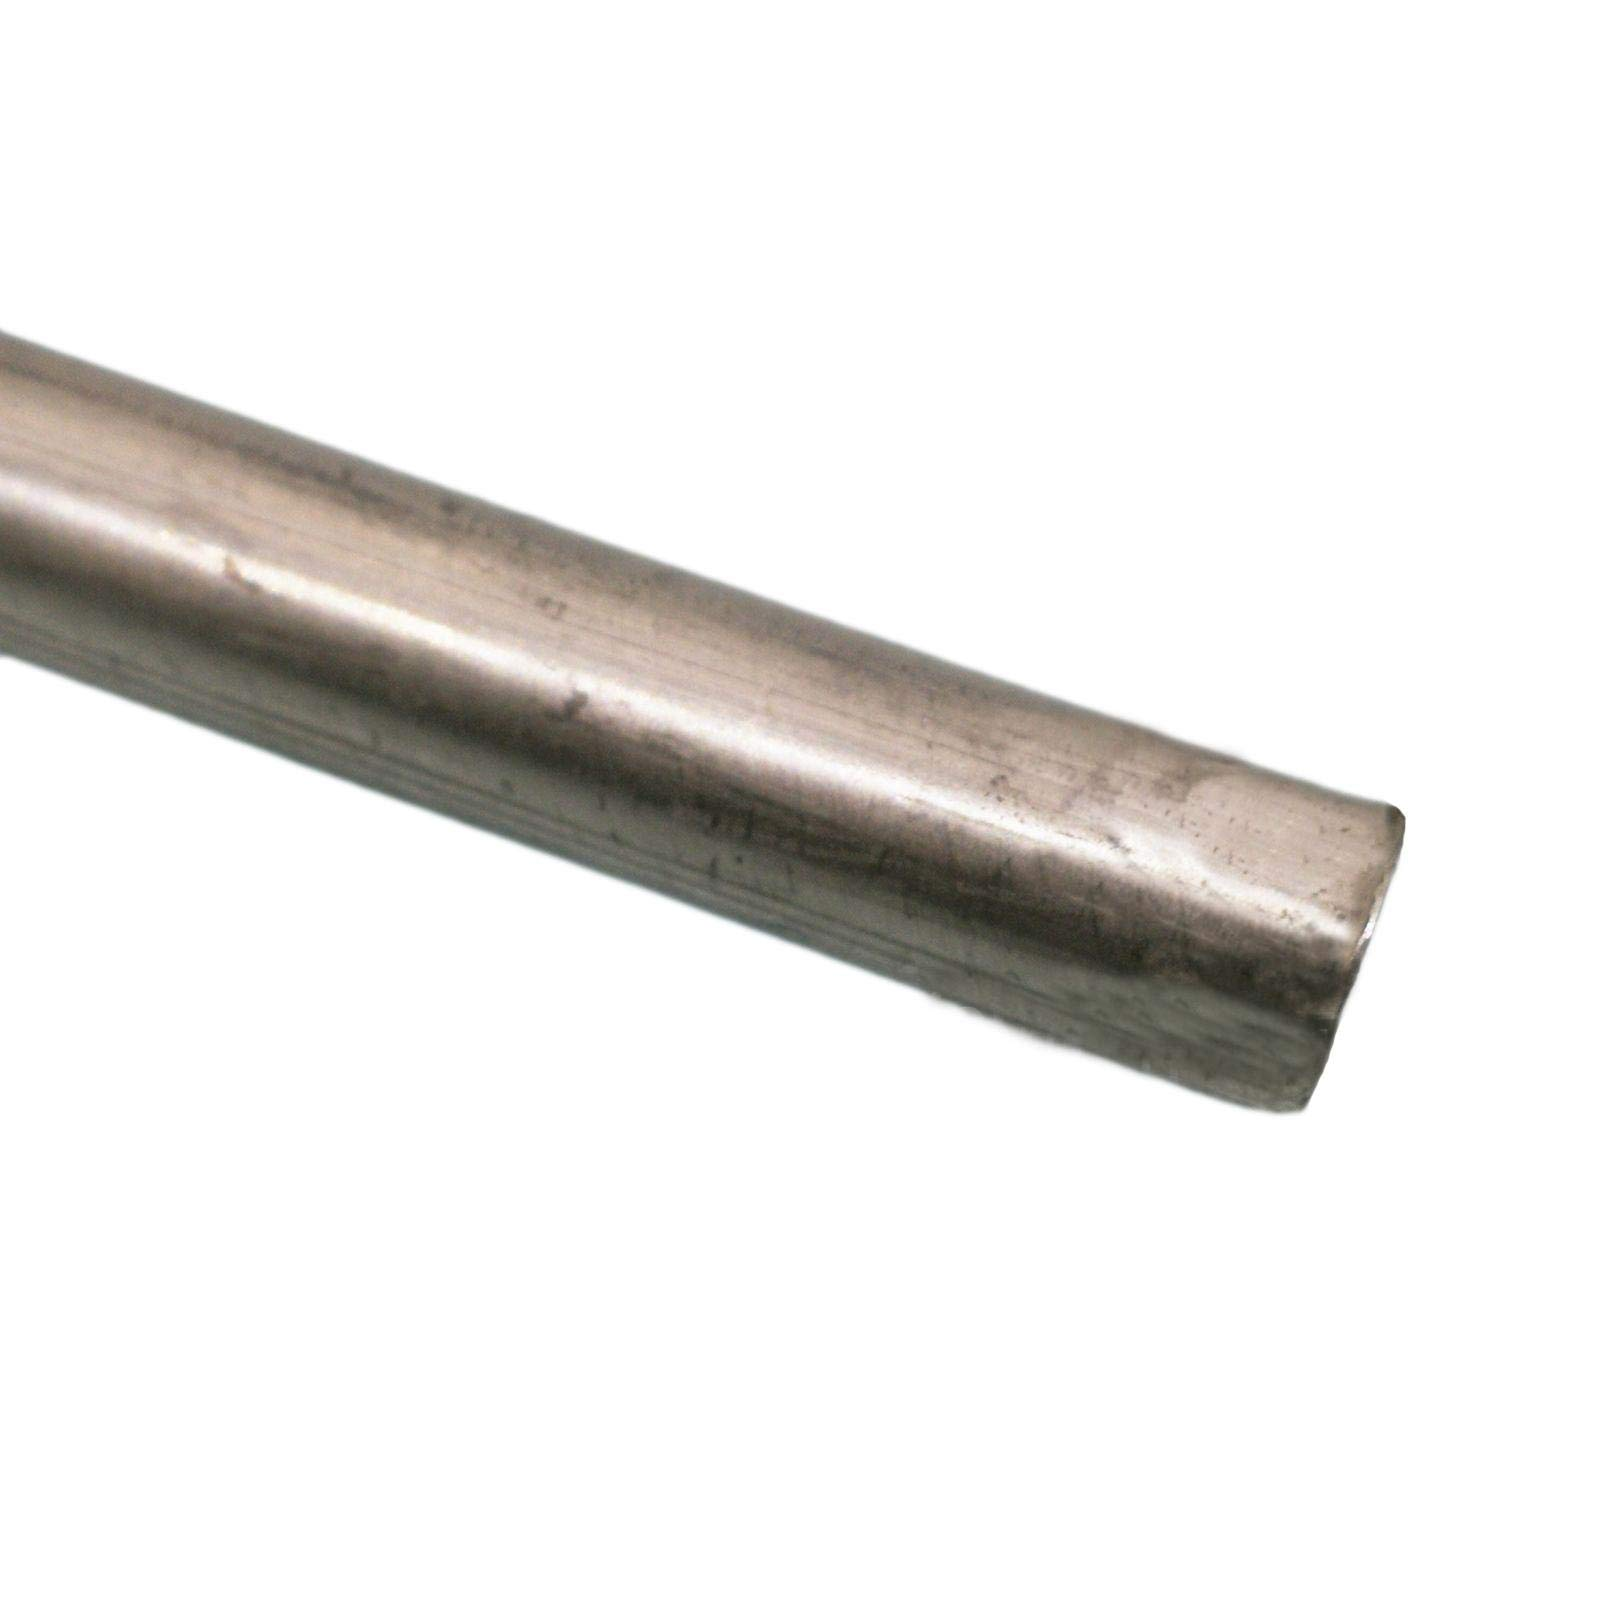 12mm(0.472'') Dia. 100mm(3.94'') Long N6 99.6% Pure Nickel Bar Round Rod by Yodaoke